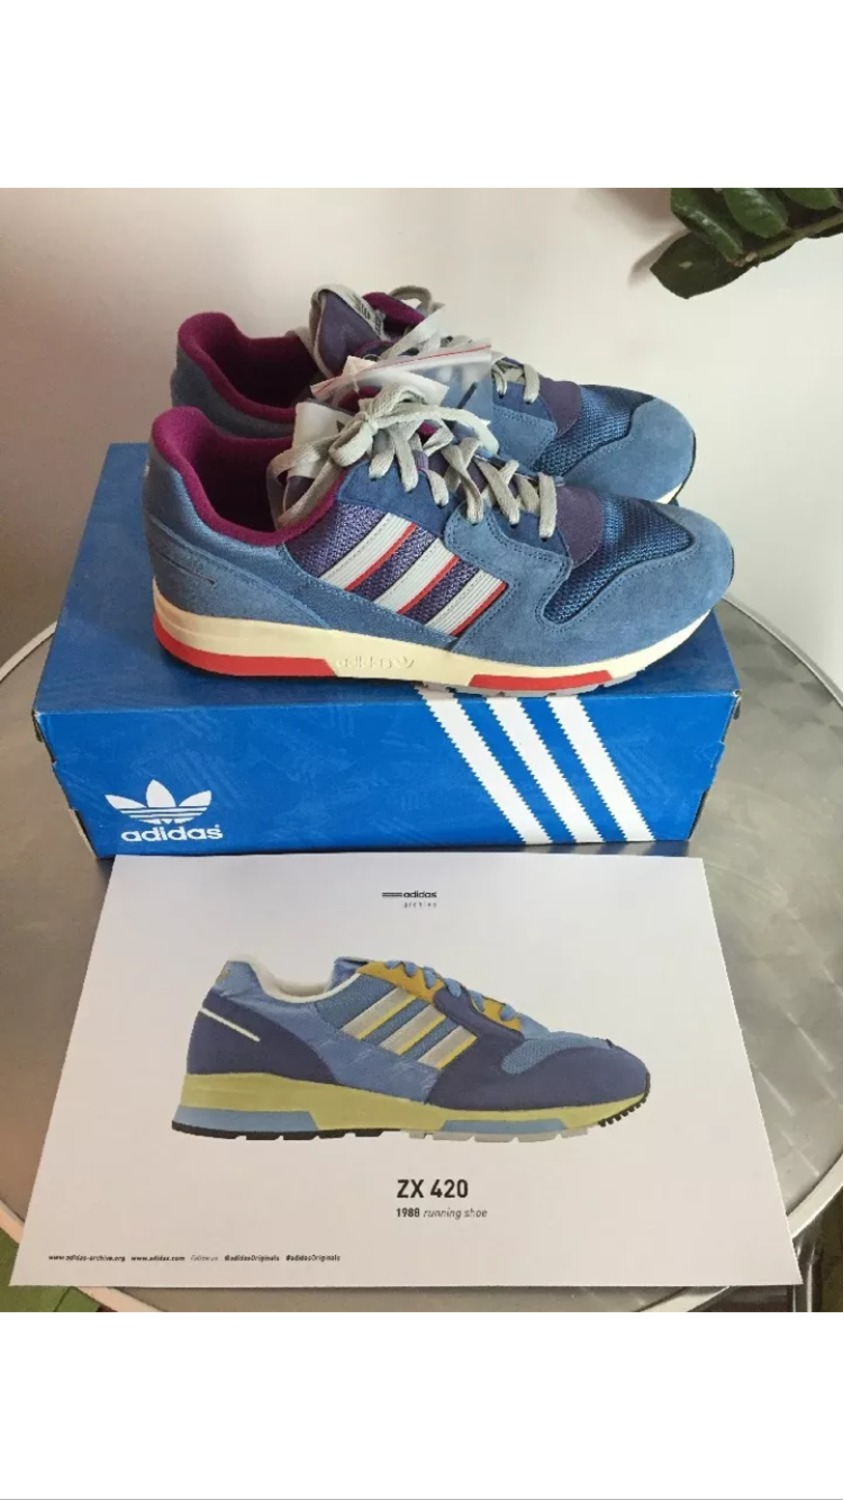 Adidas Zx 420 Quotoole